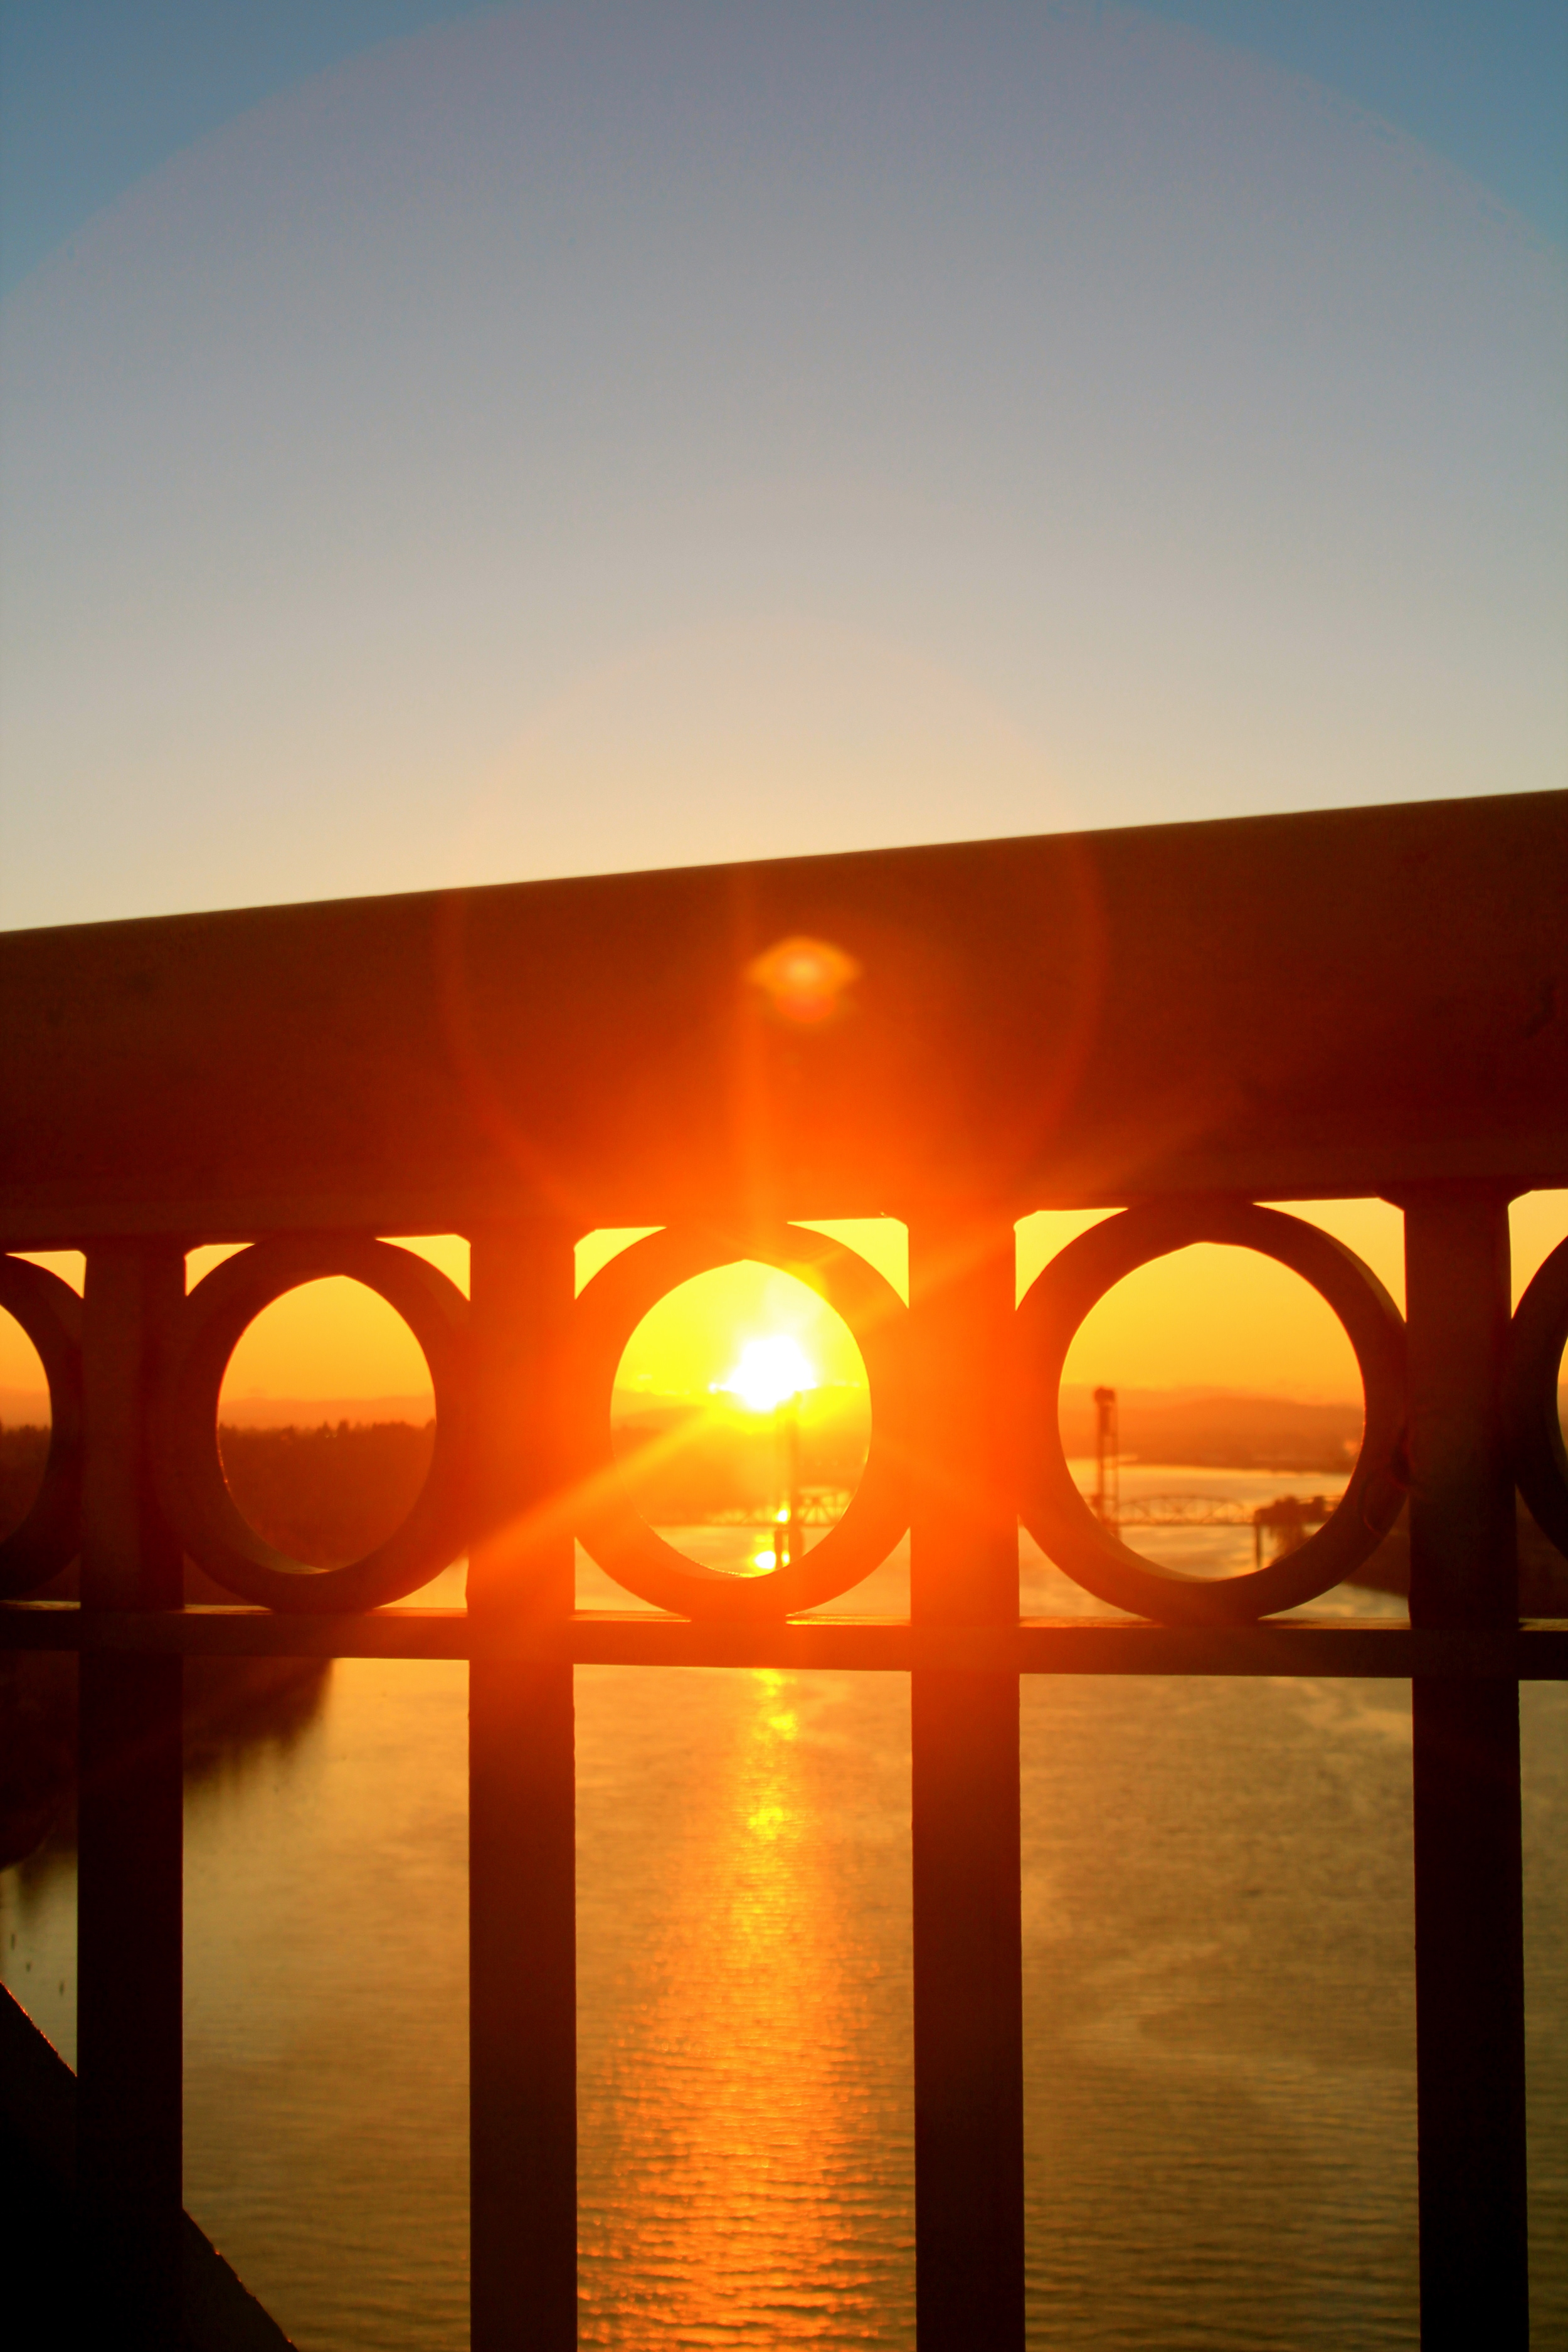 The sun peeks through the St. John's Bridge on an early morning in December.